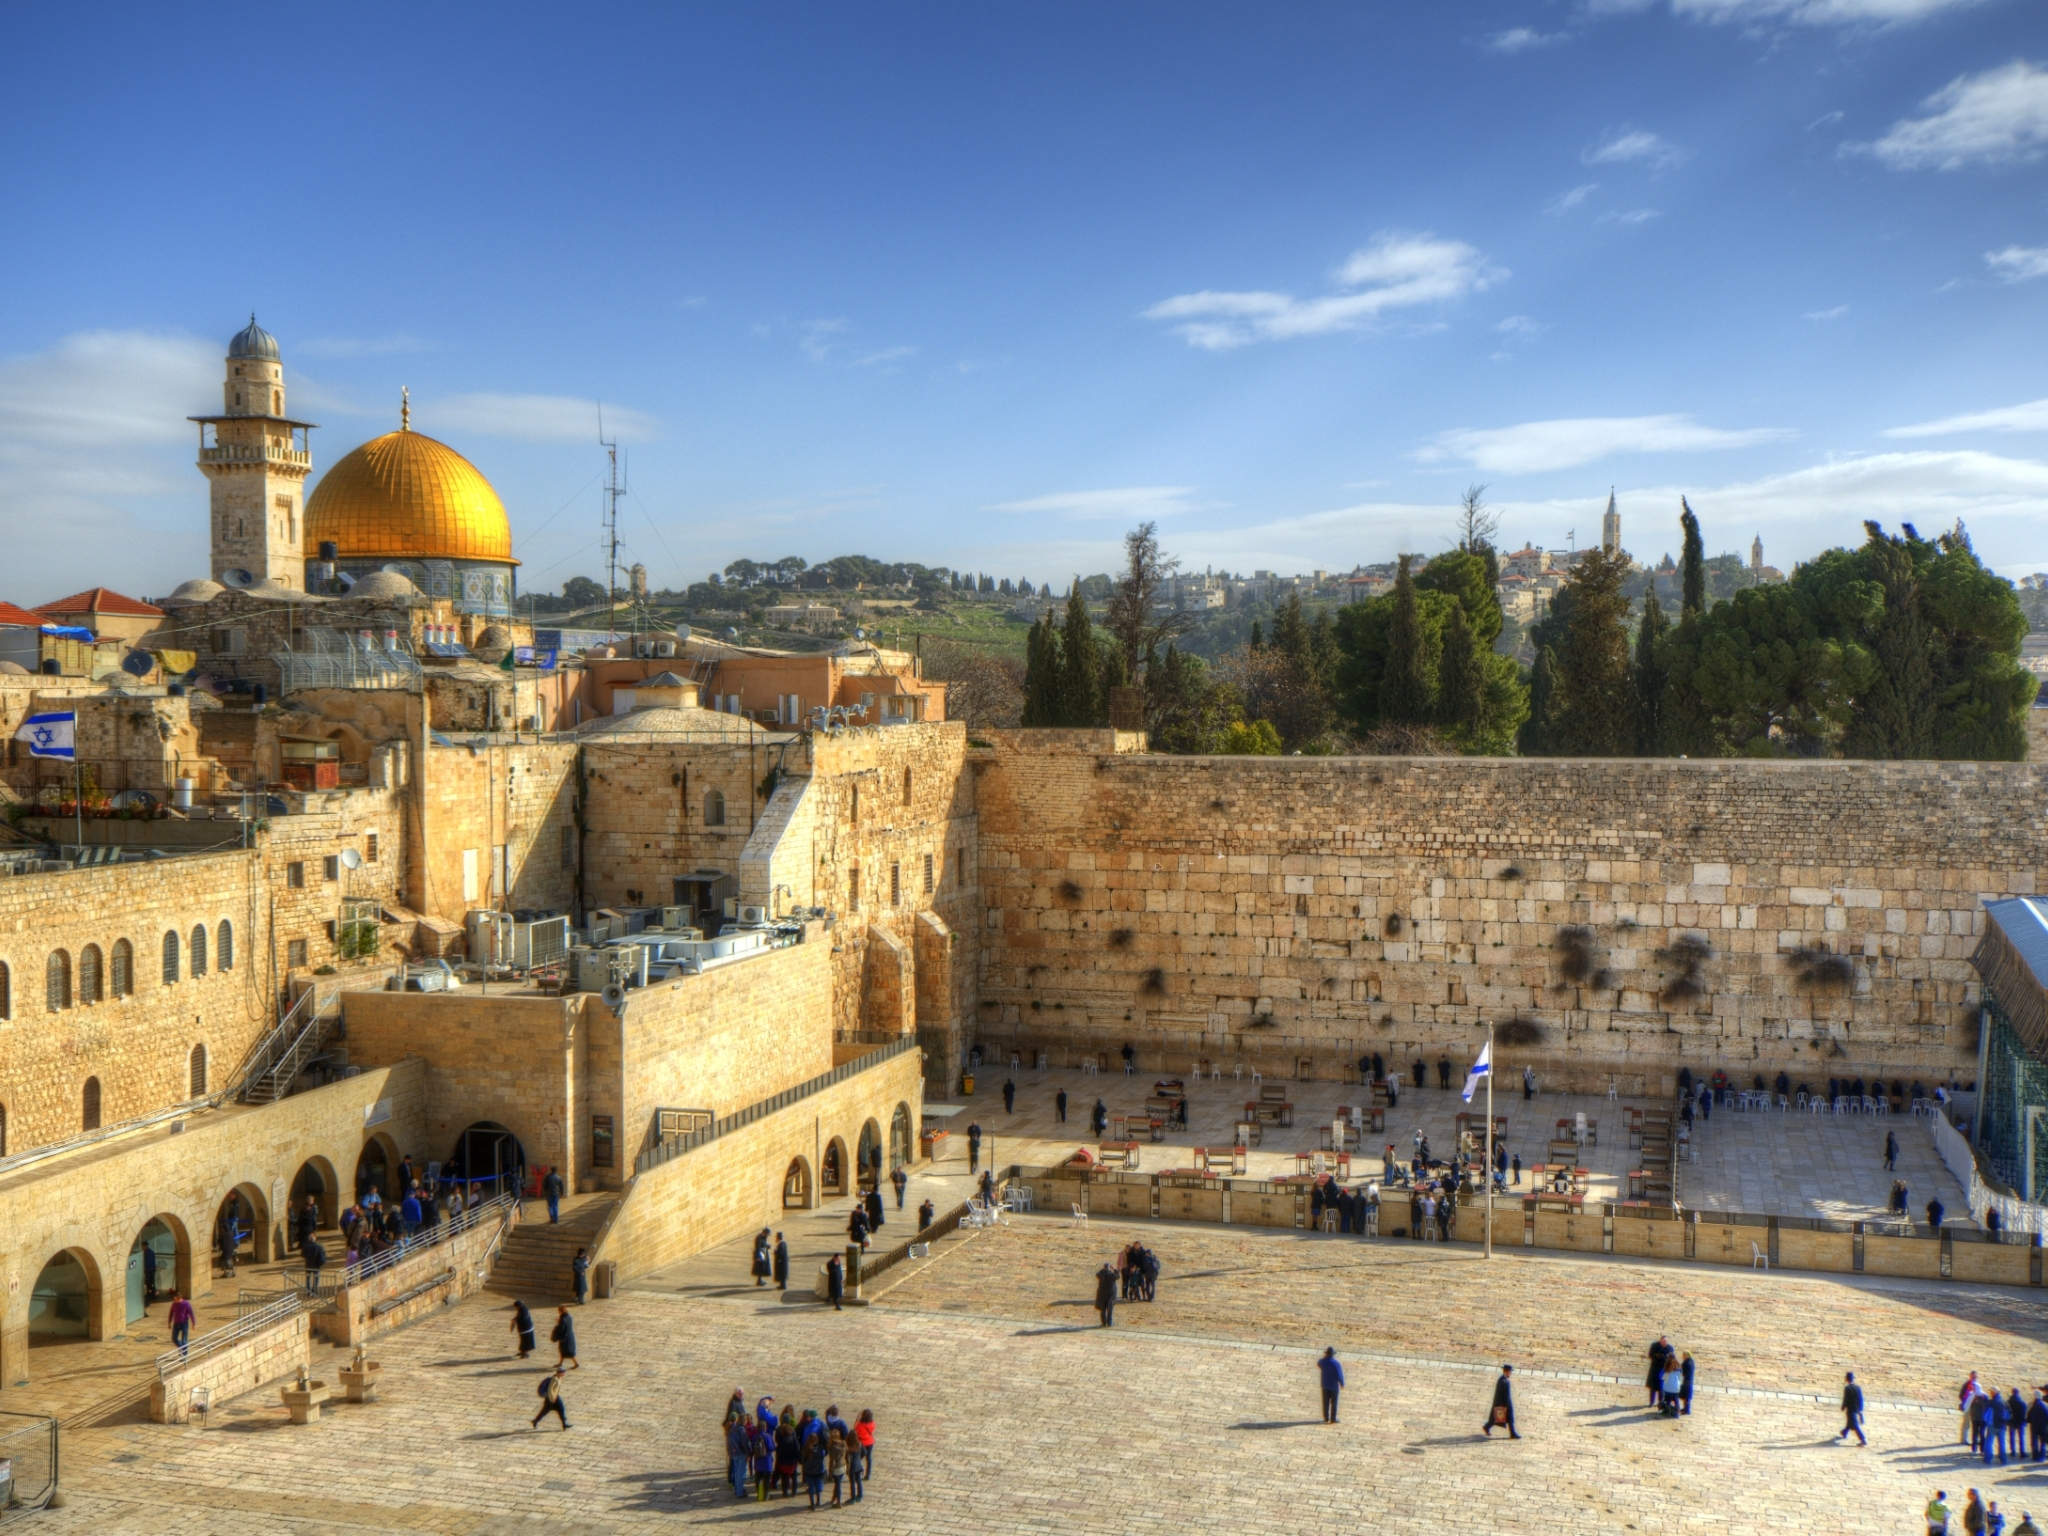 The Wailing Wall - The Kotel